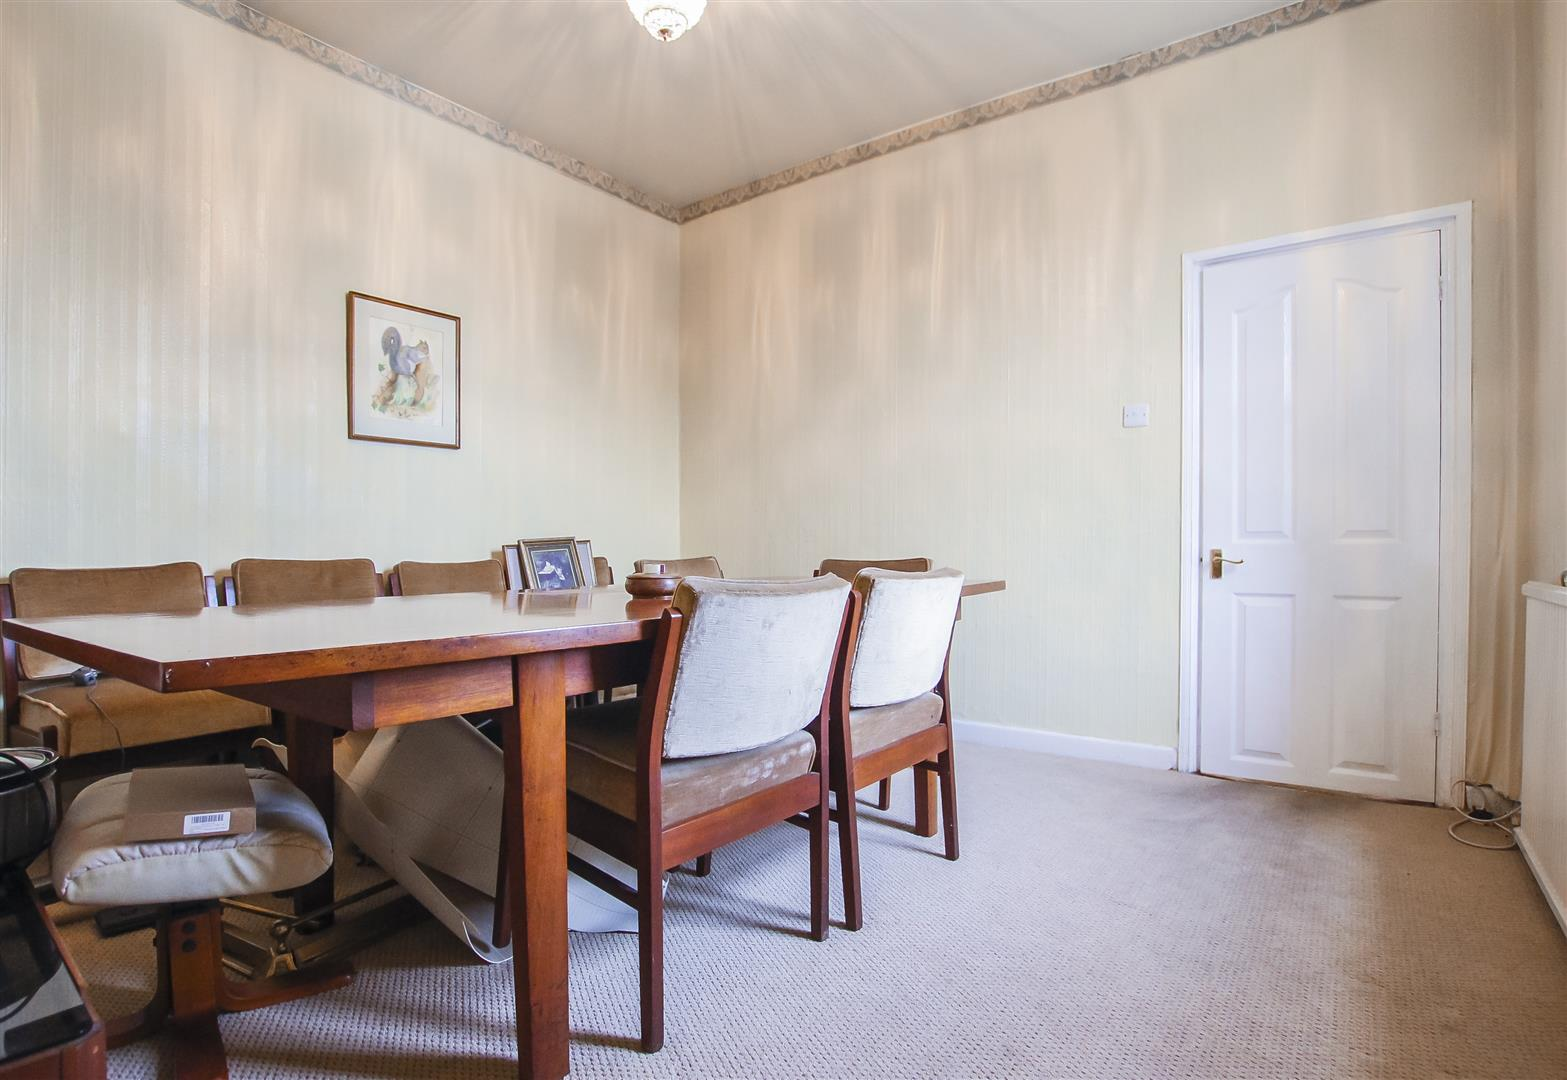 4 Bedroom House For Sale - Reception Room Three